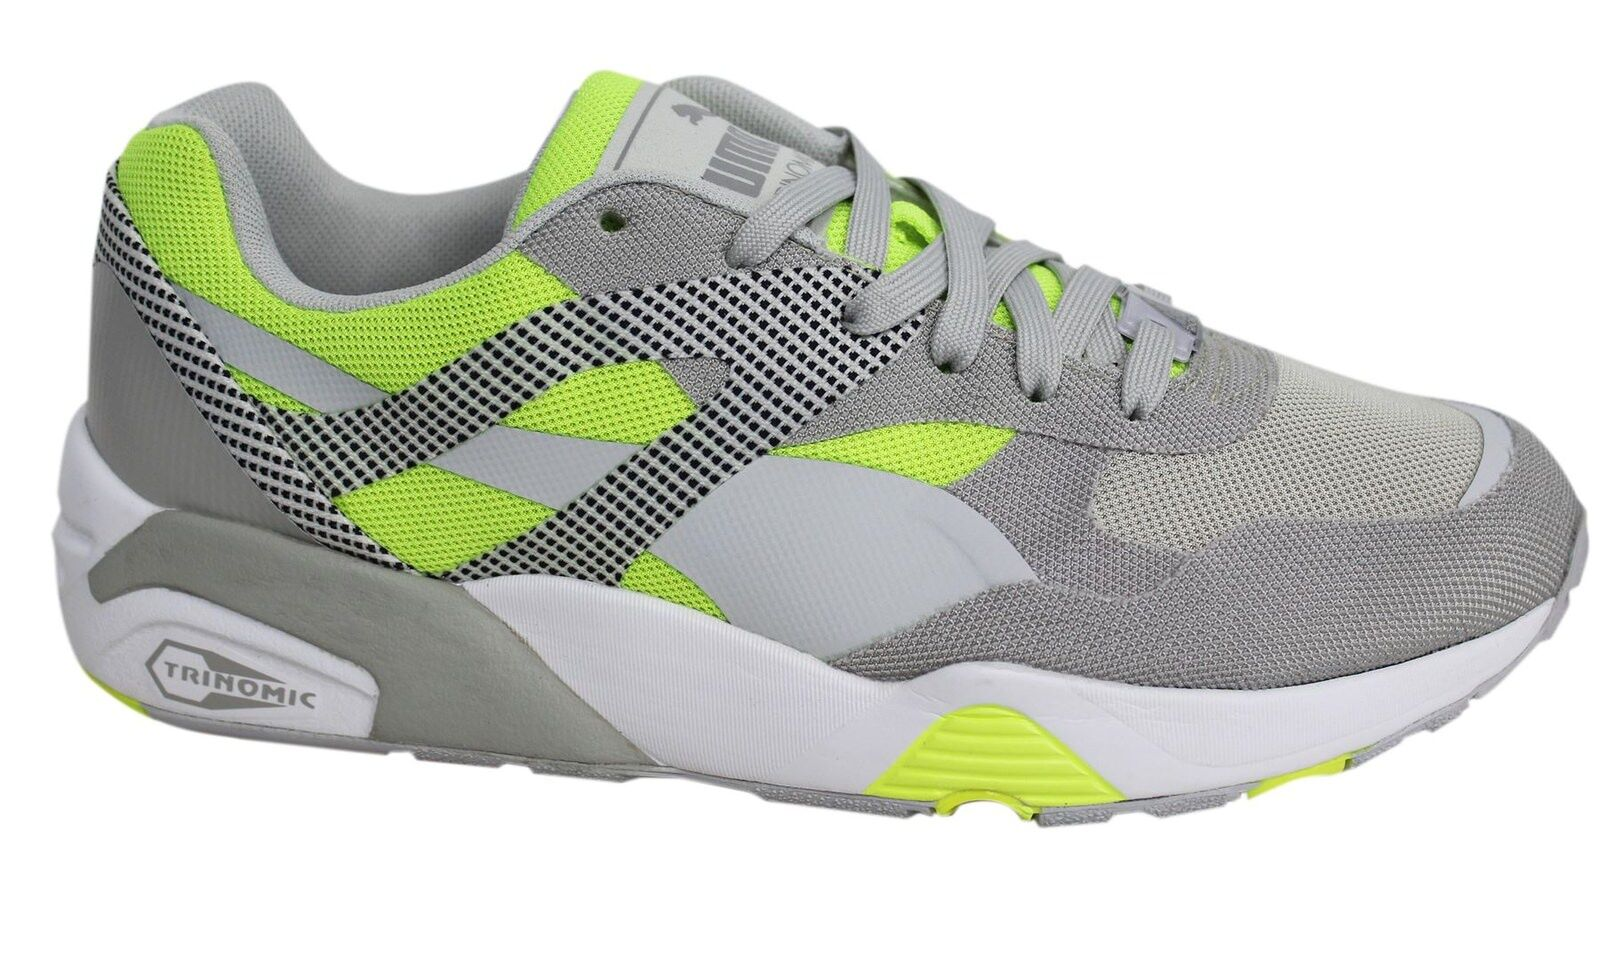 Puma R698 Progressive Lace Up Grau Yellow  P5 Uomo Trainers 362046 02 P5  630f96